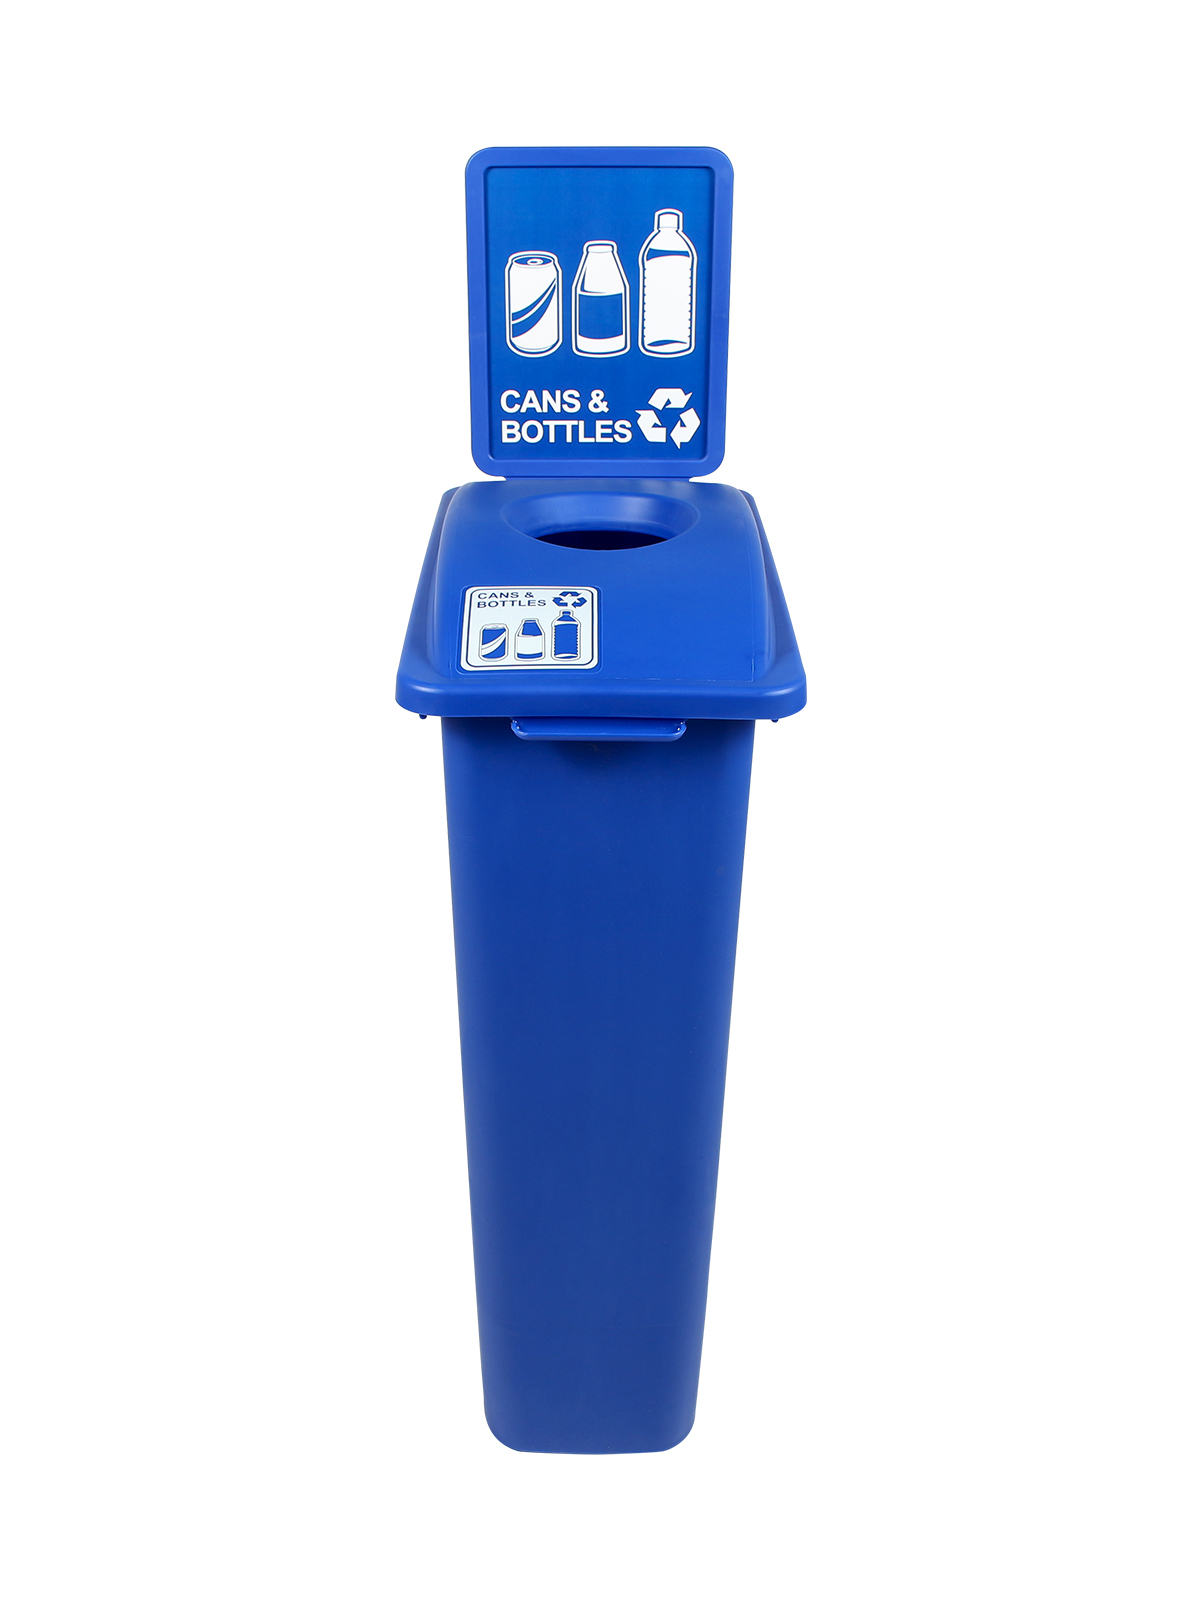 WASTE WATCHER - Single - Cans & Bottles - Circle - Blue